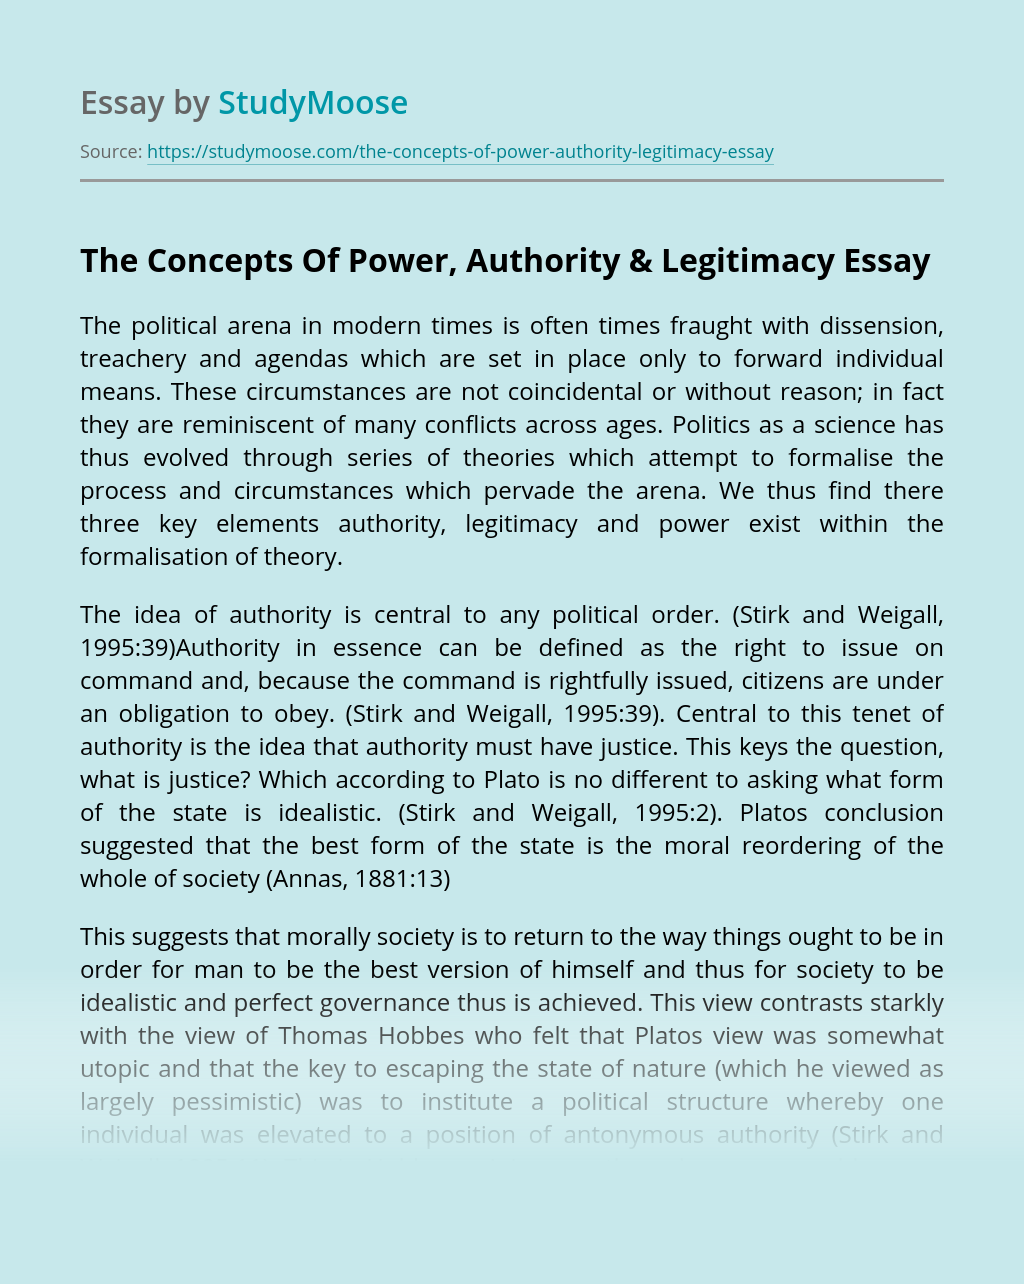 The Concepts Of Power, Authority & Legitimacy